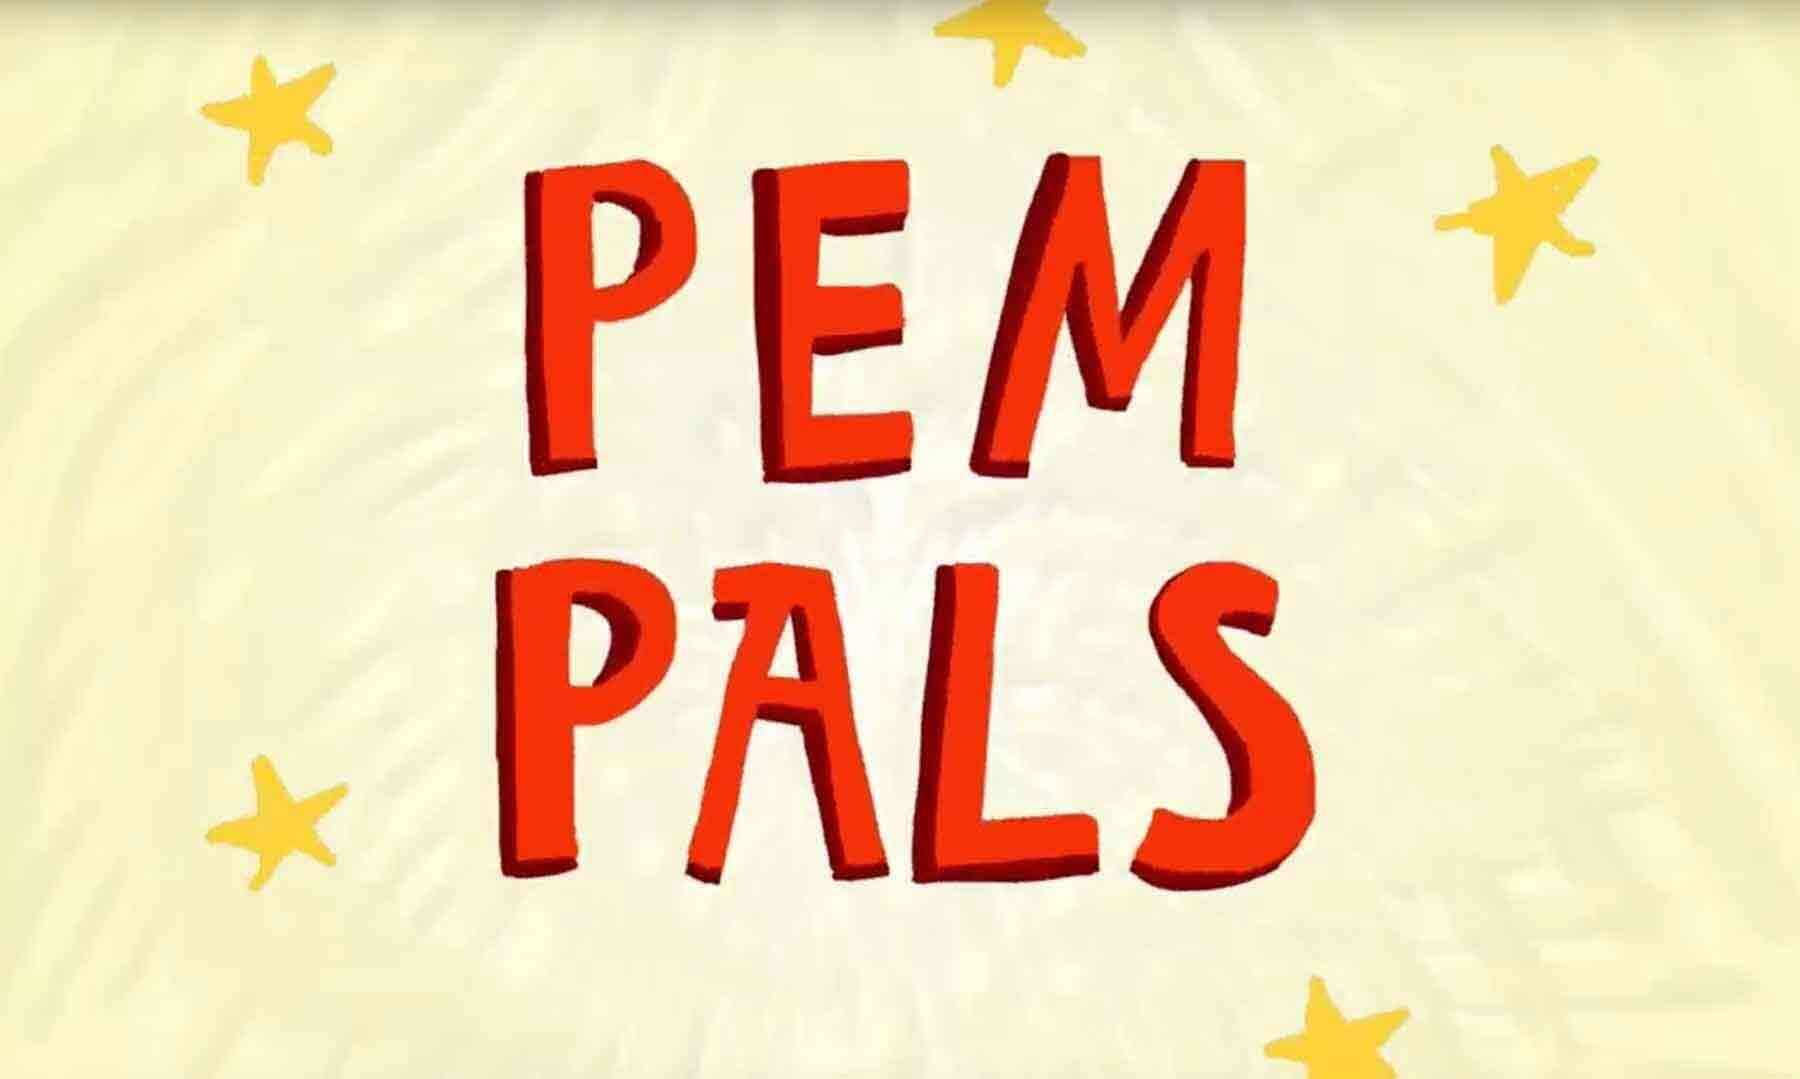 PEM PALS words on a yellow background